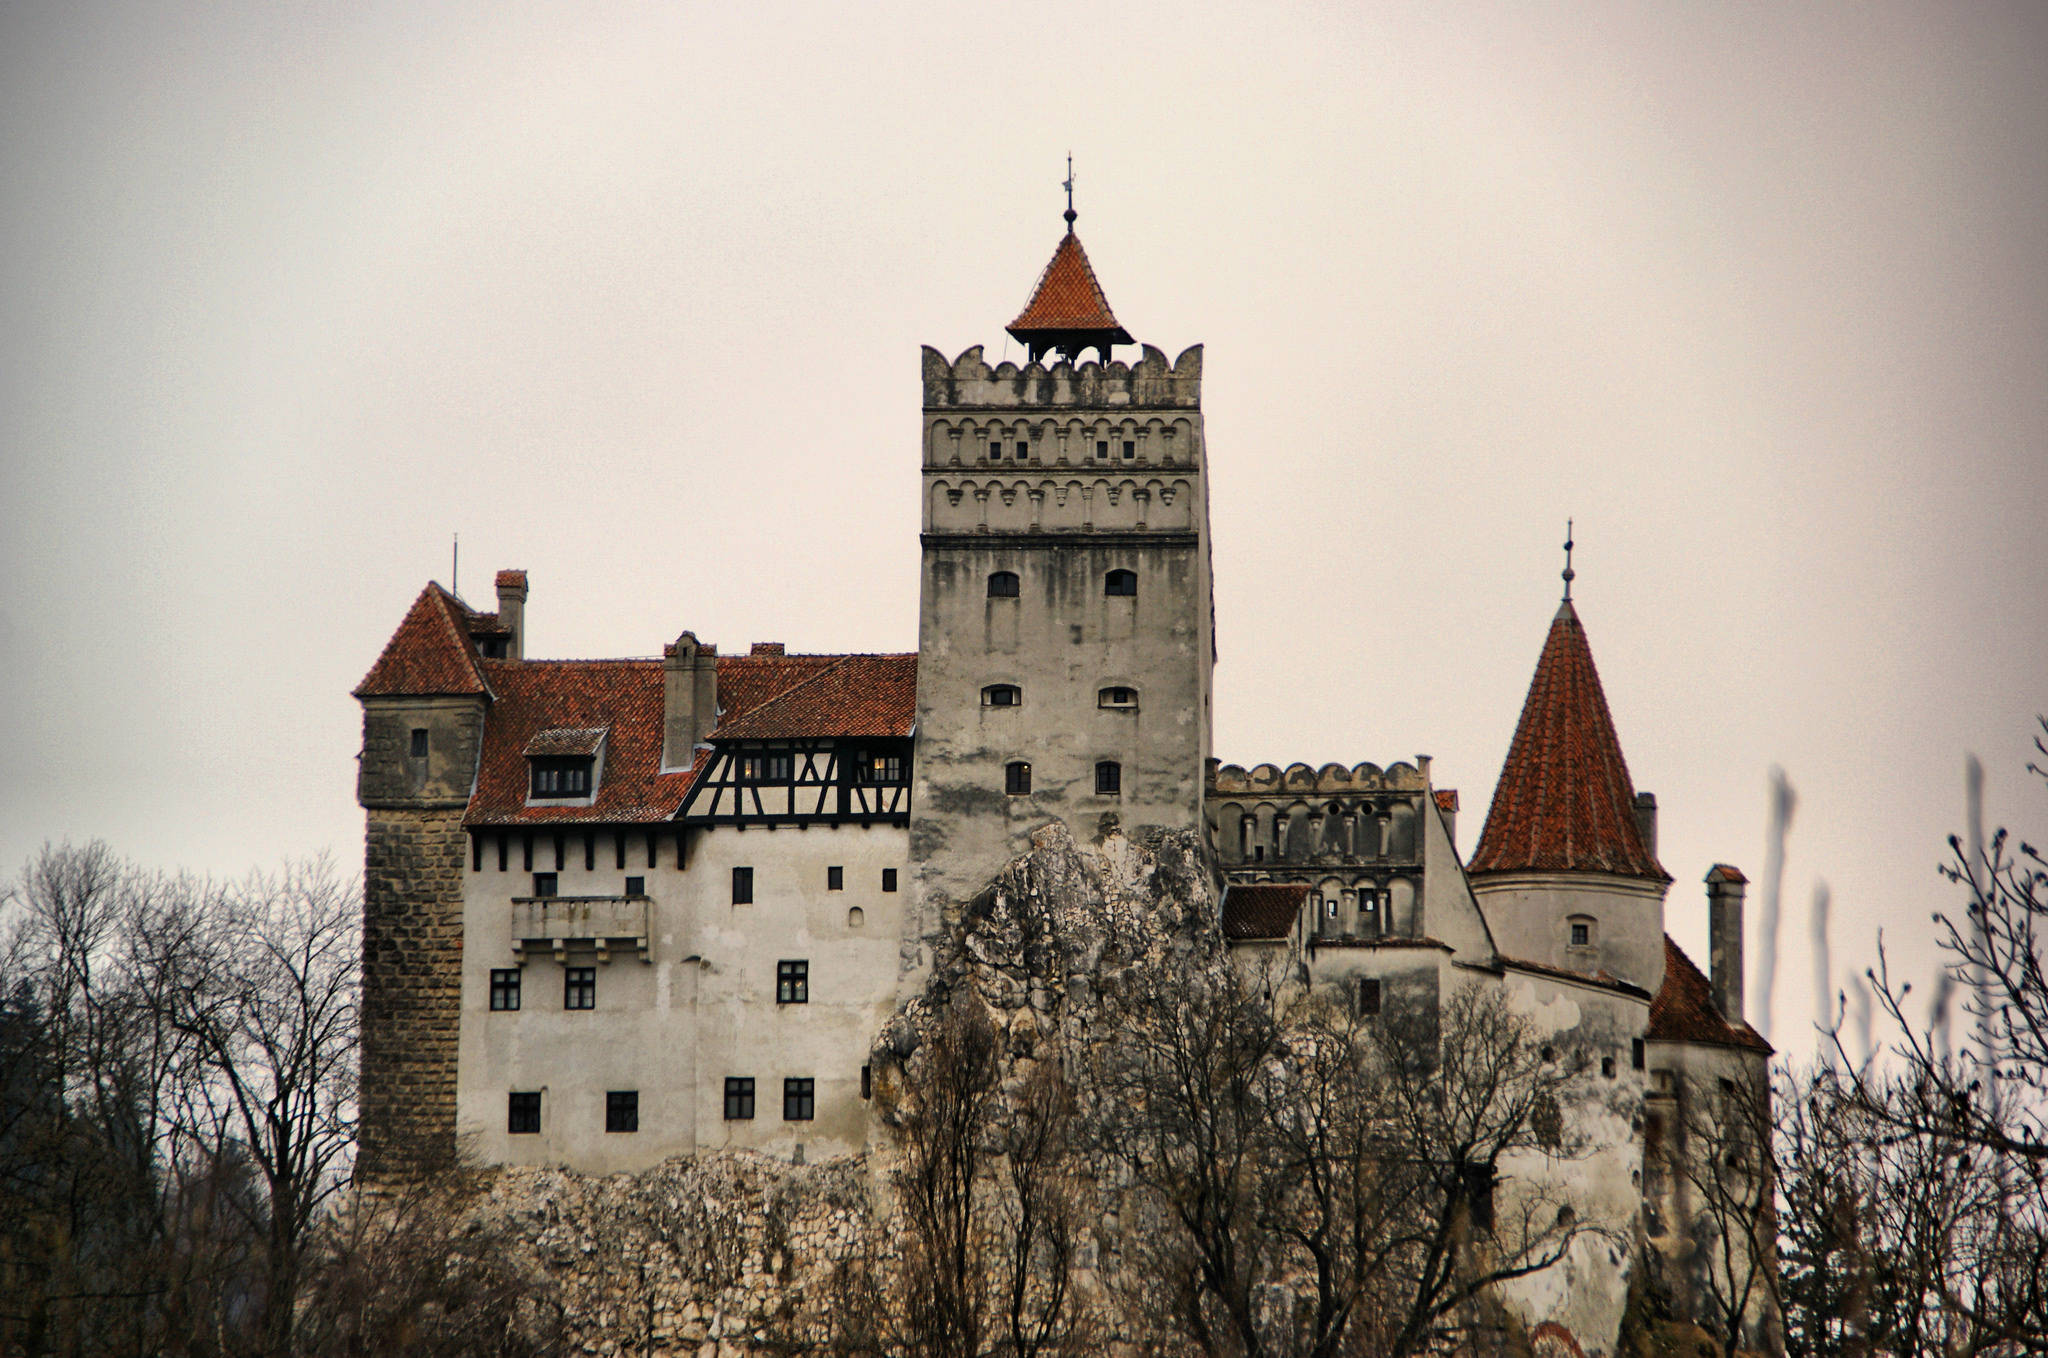 Let's save Bran Castle (a.k.a. Dracula's Castle) in Romania ...